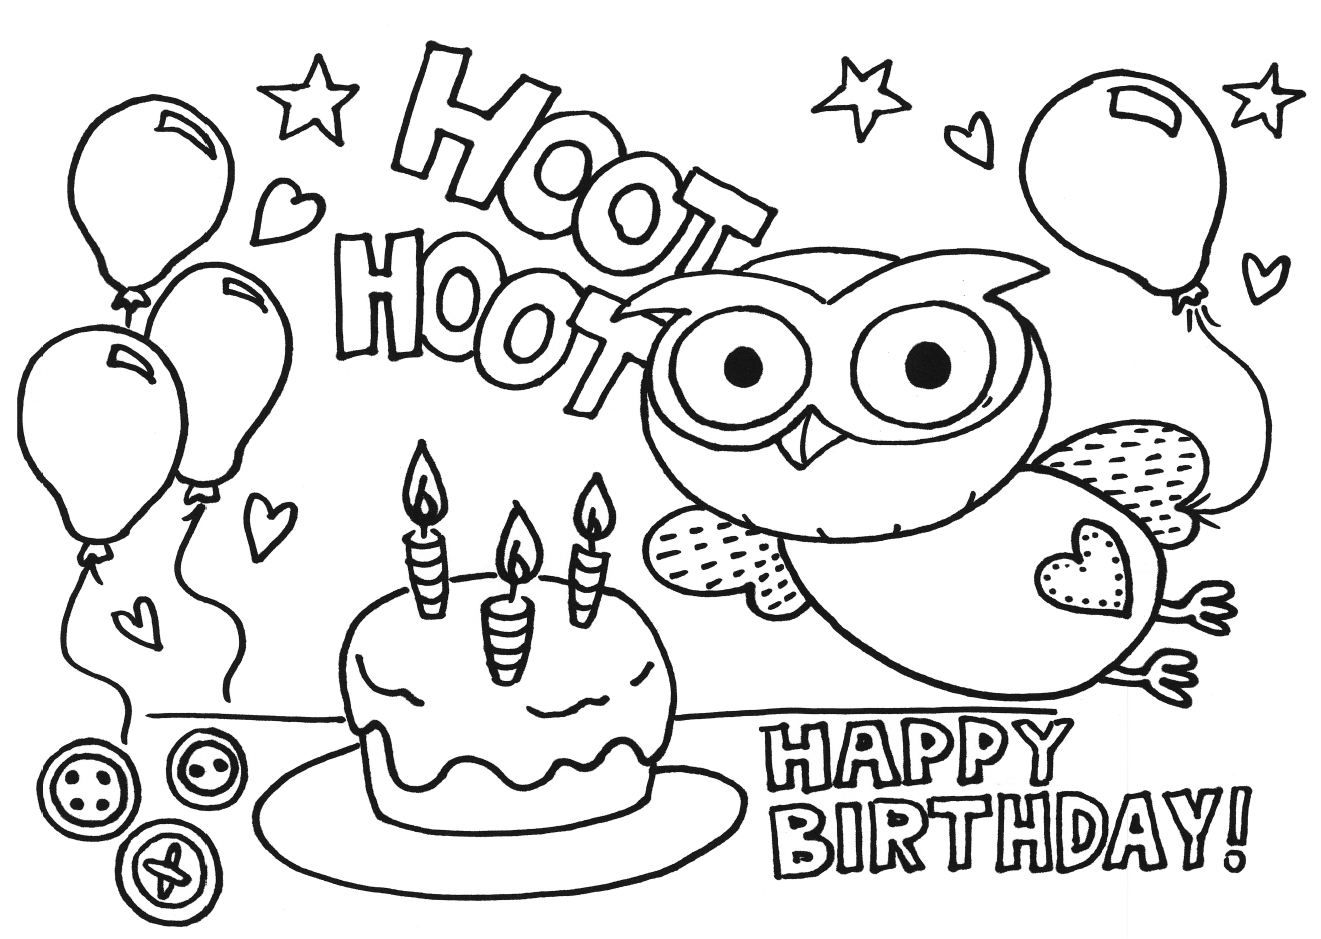 Birthday Card Coloring Page - Coloring Home